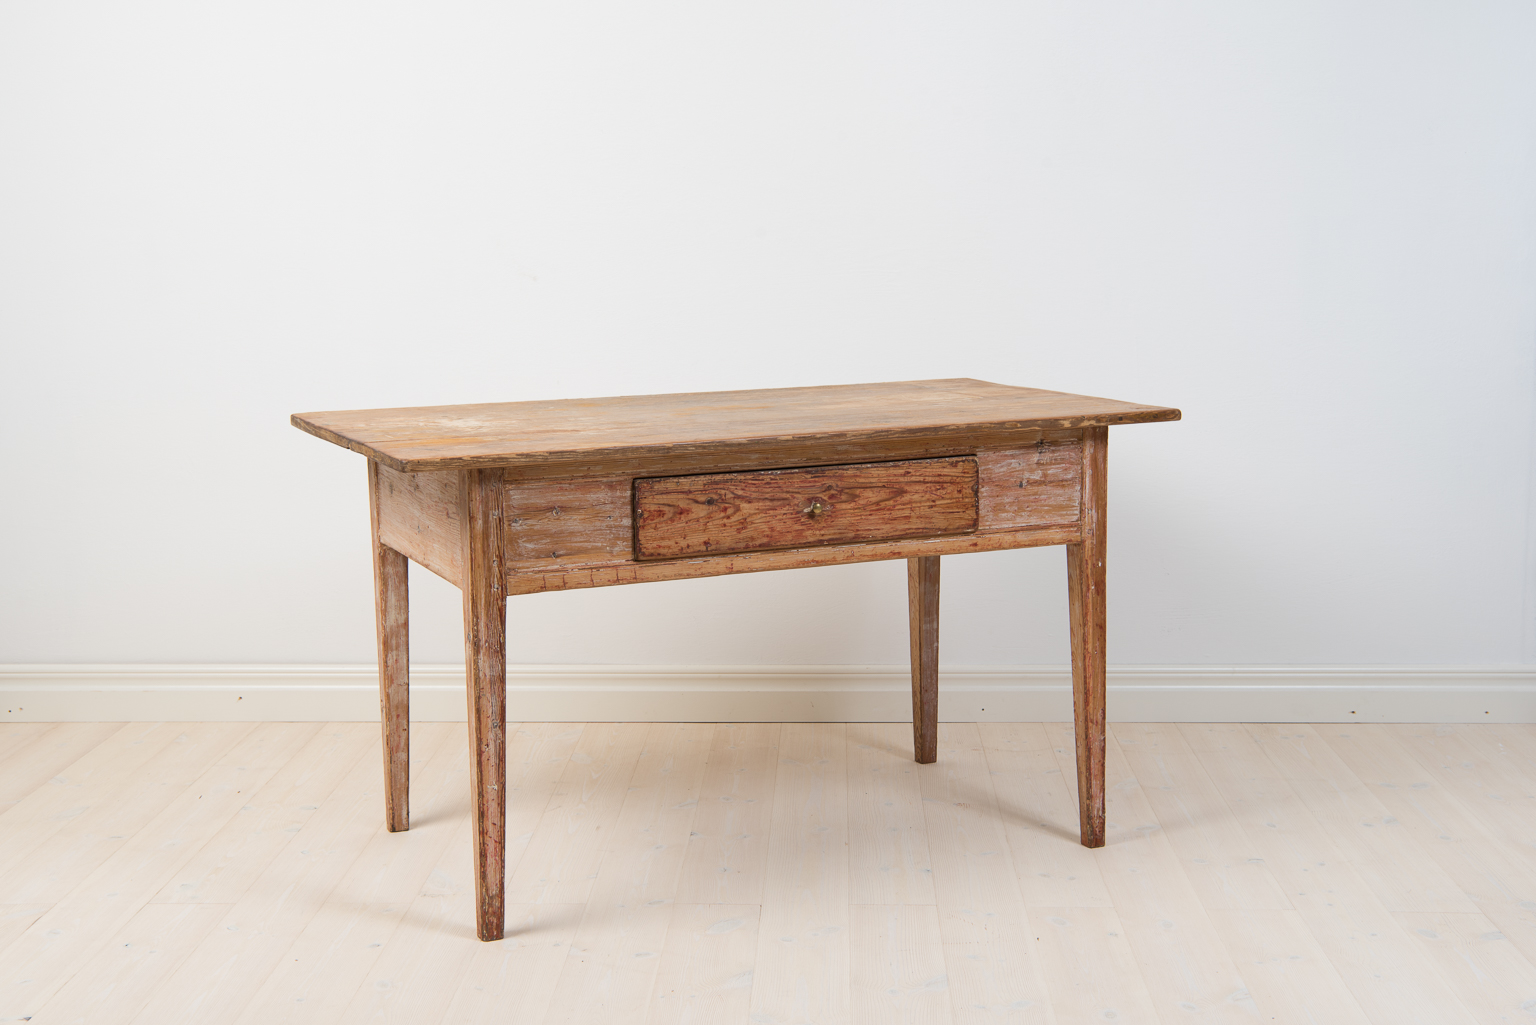 Desk with straight tapered legs and drawer with original knob in brass. Manufactured around 1810/20